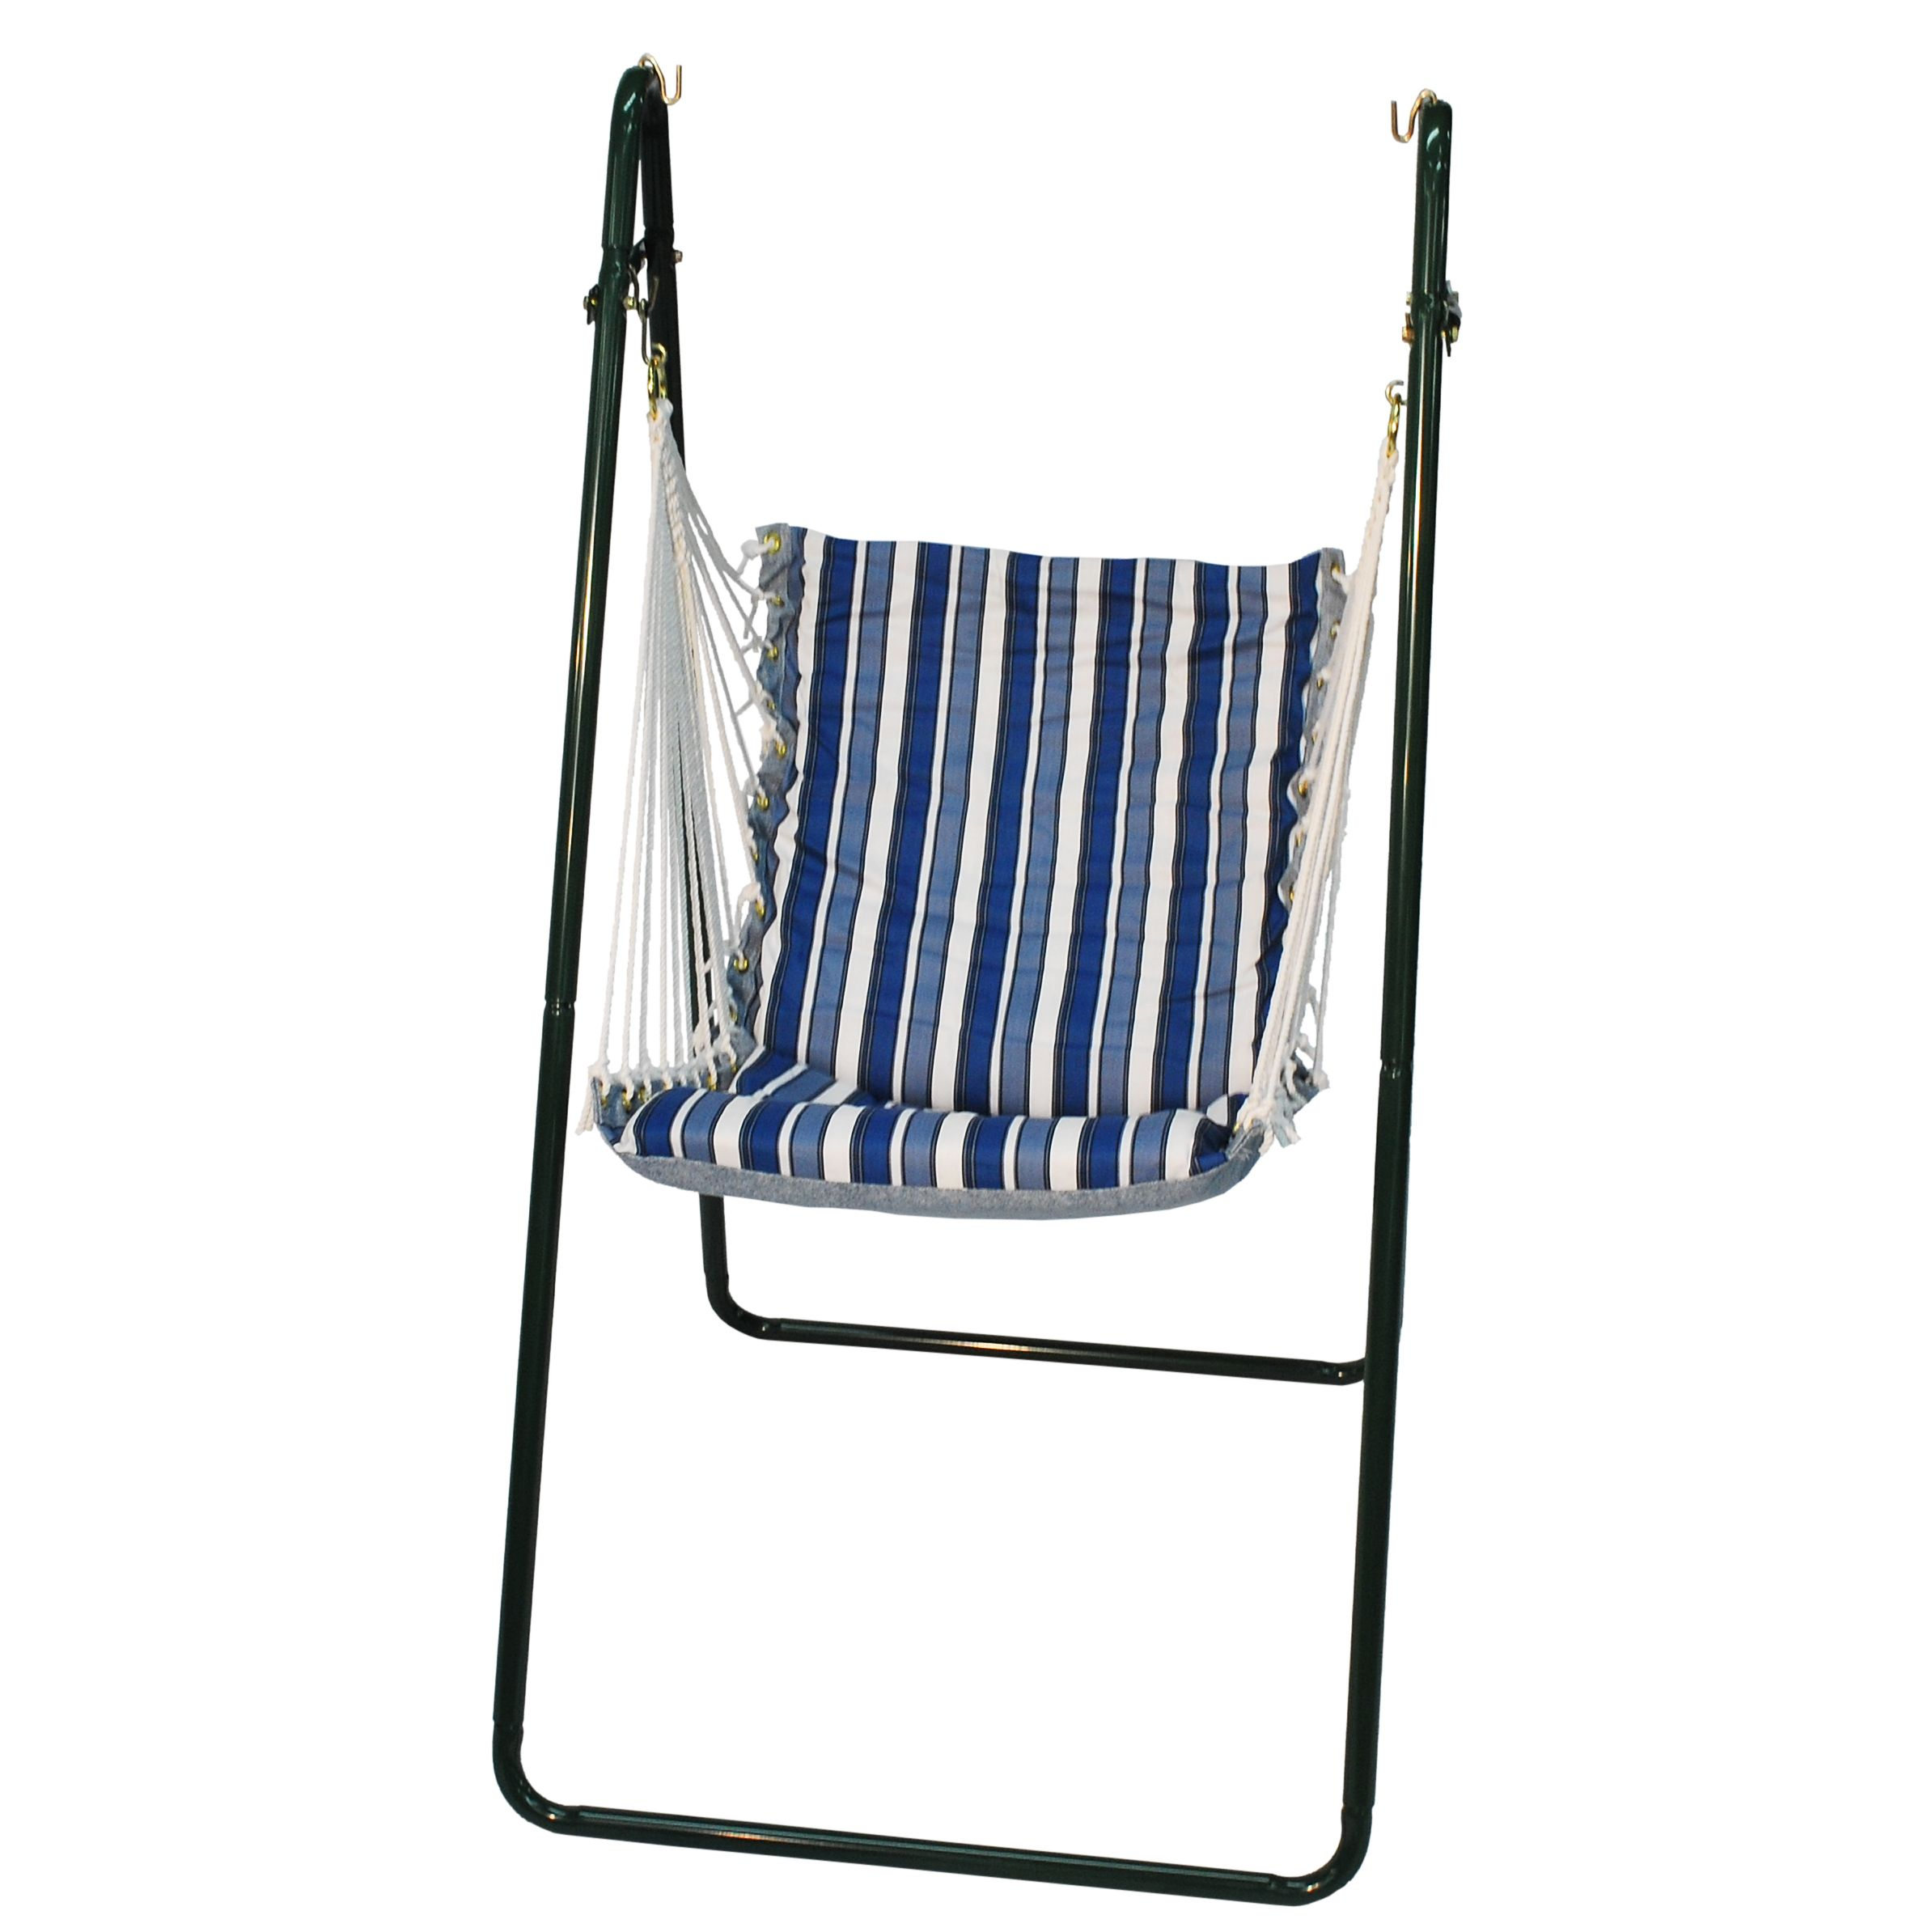 Swing Chair Stand Blue Stripe Algoma Swing Chair And Stand Set